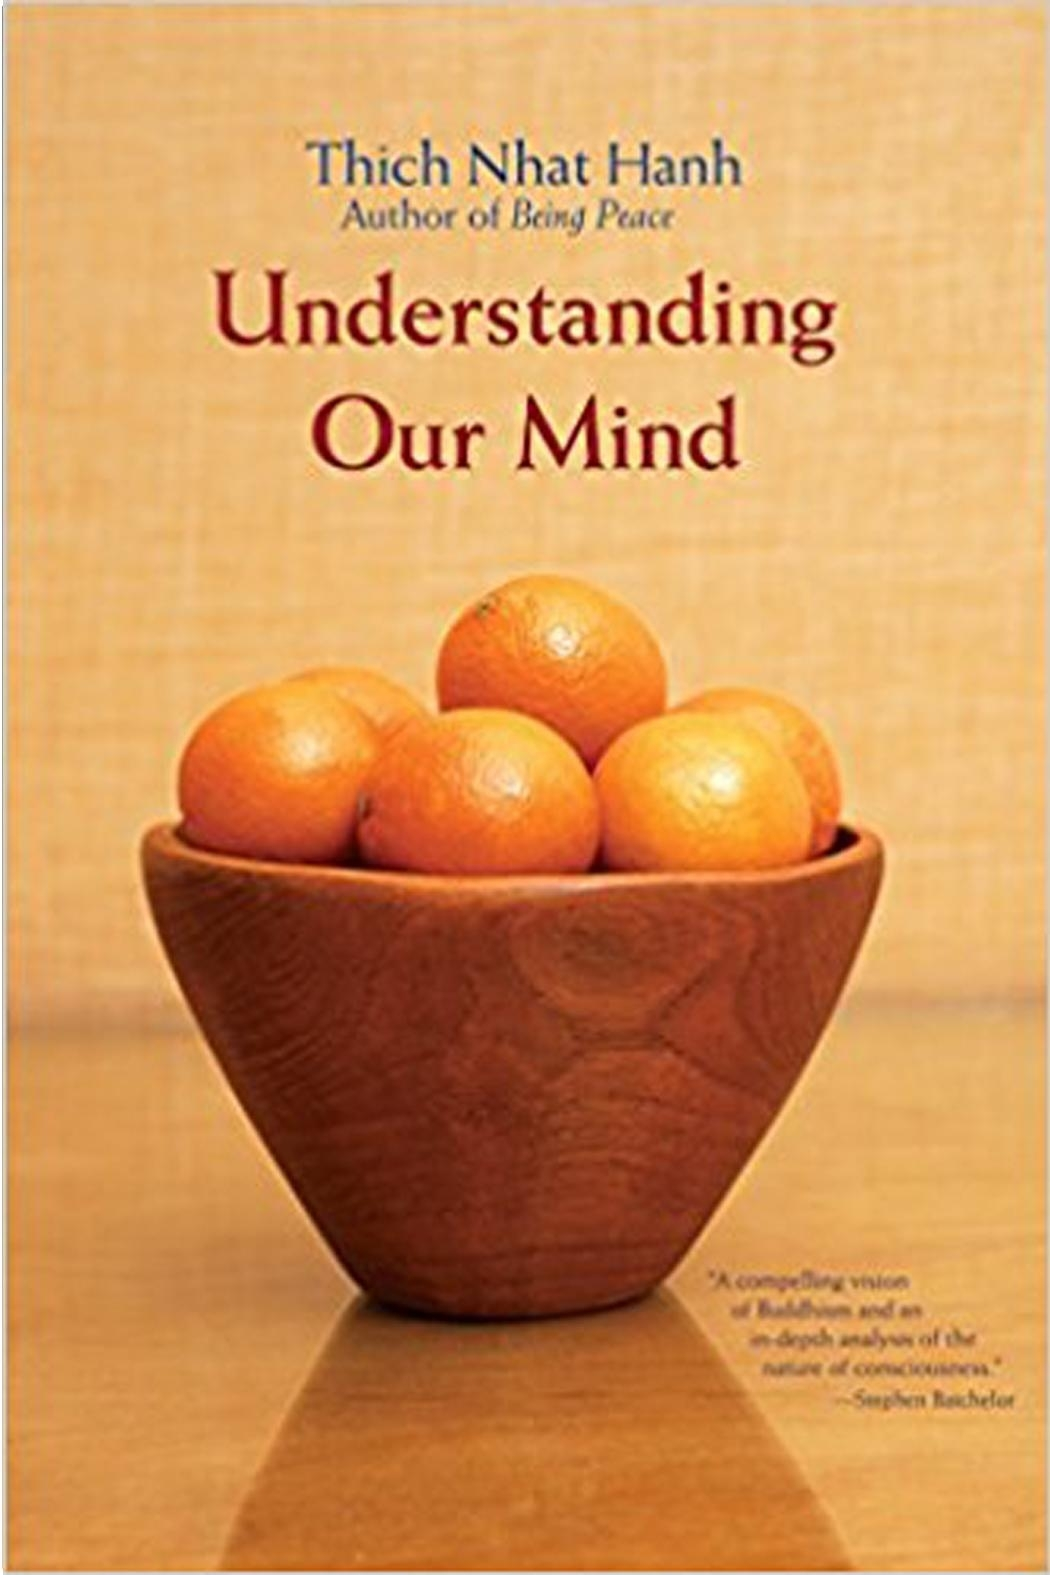 tu-anh boutique Understanding Our Mind - Main Image